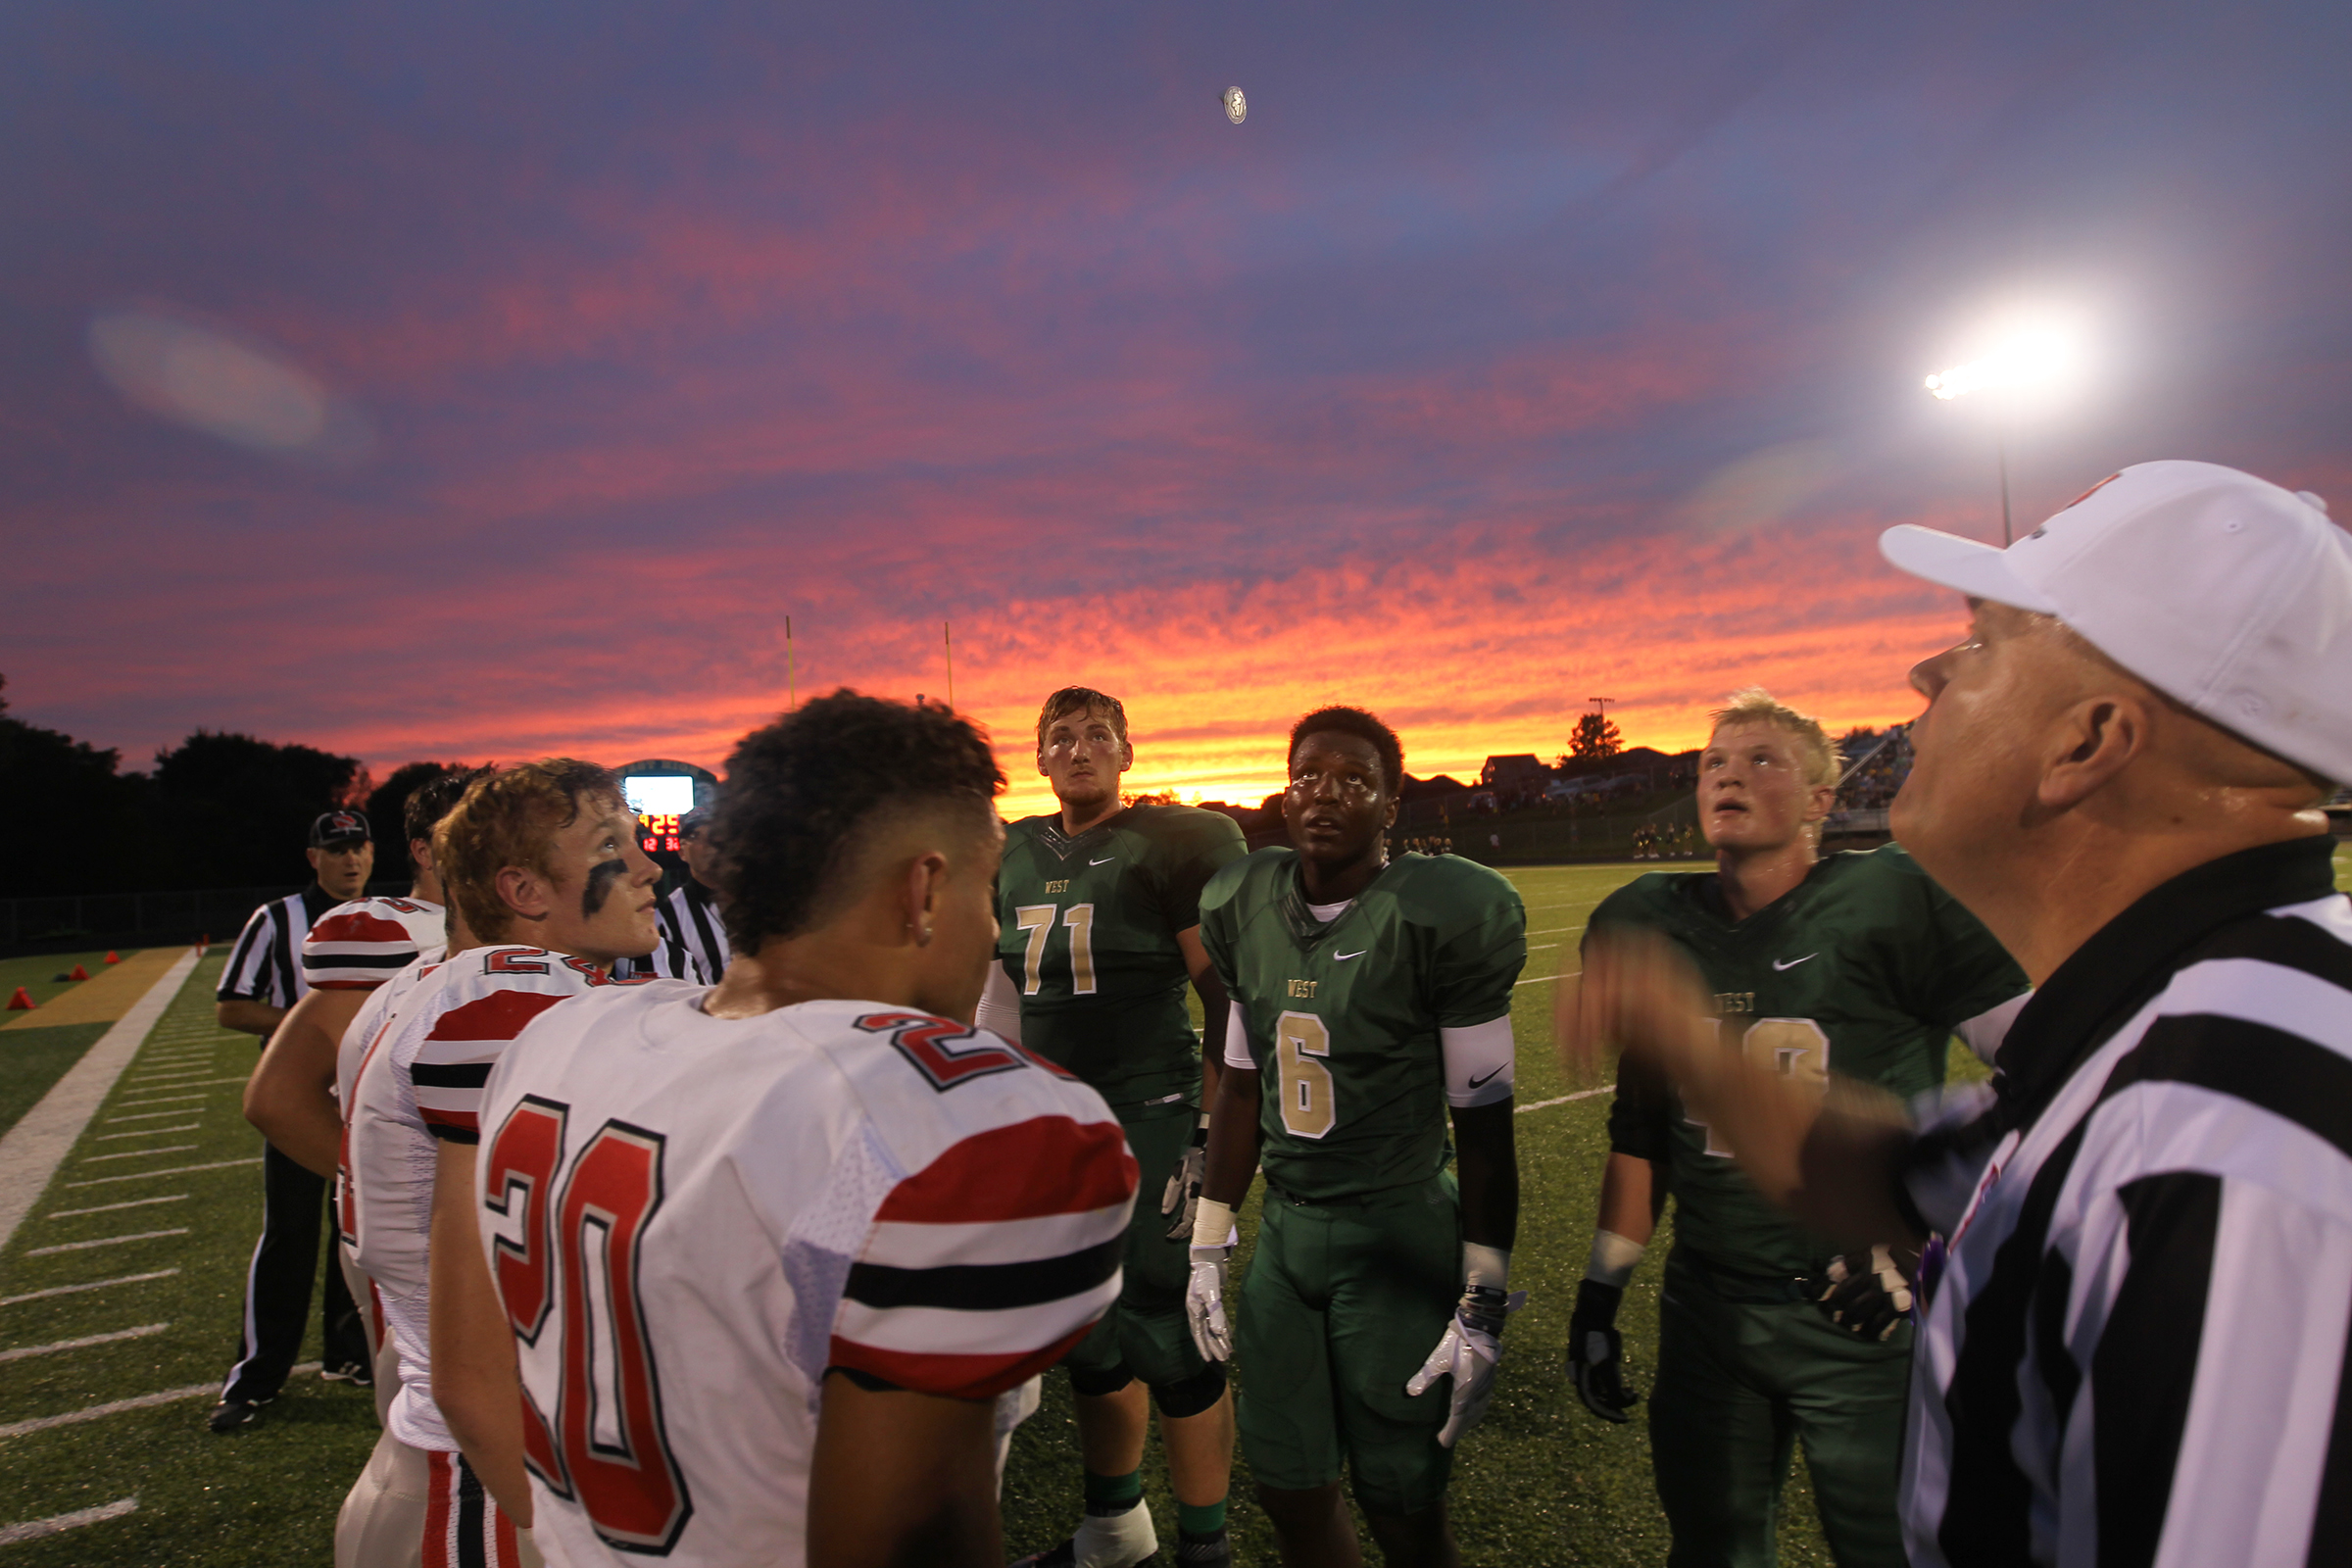 City High and West High players line up for the coin toss before their game at West High.